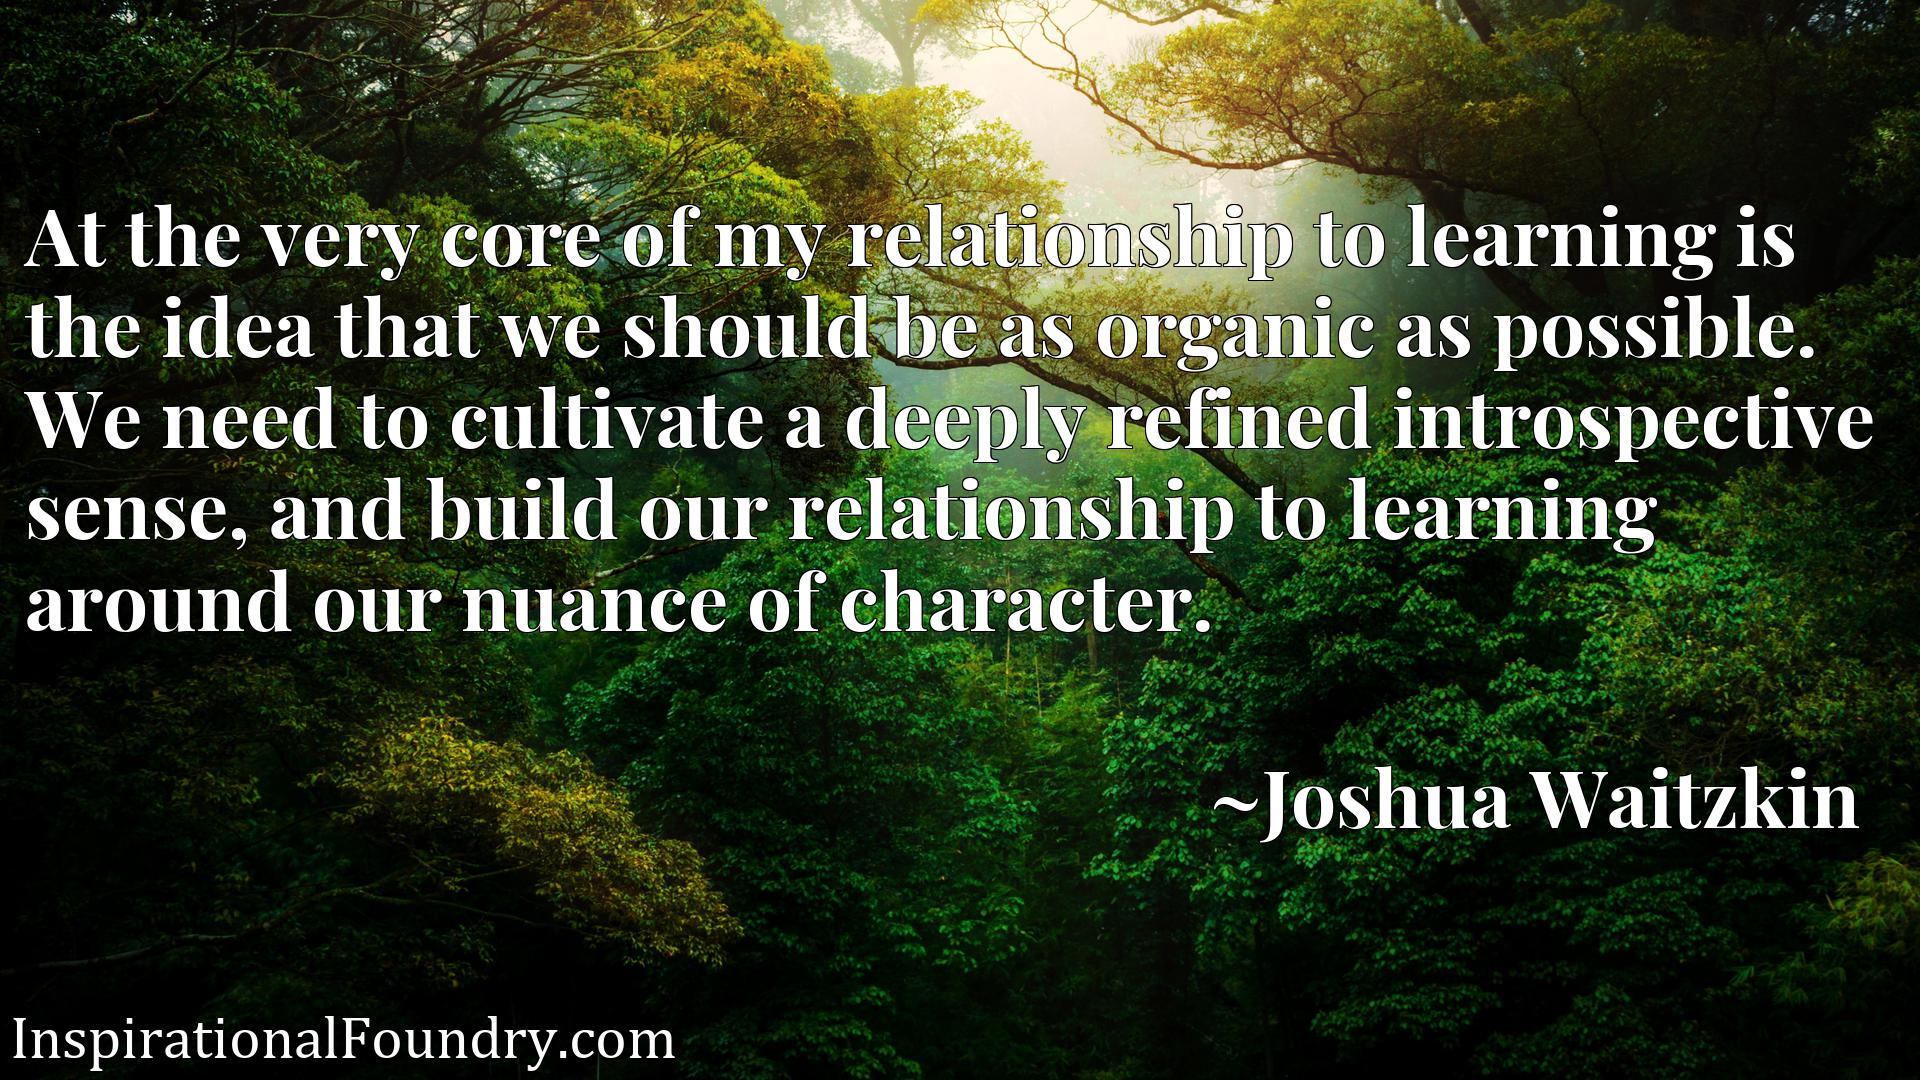 Quote Picture :At the very core of my relationship to learning is the idea that we should be as organic as possible. We need to cultivate a deeply refined introspective sense, and build our relationship to learning around our nuance of character.